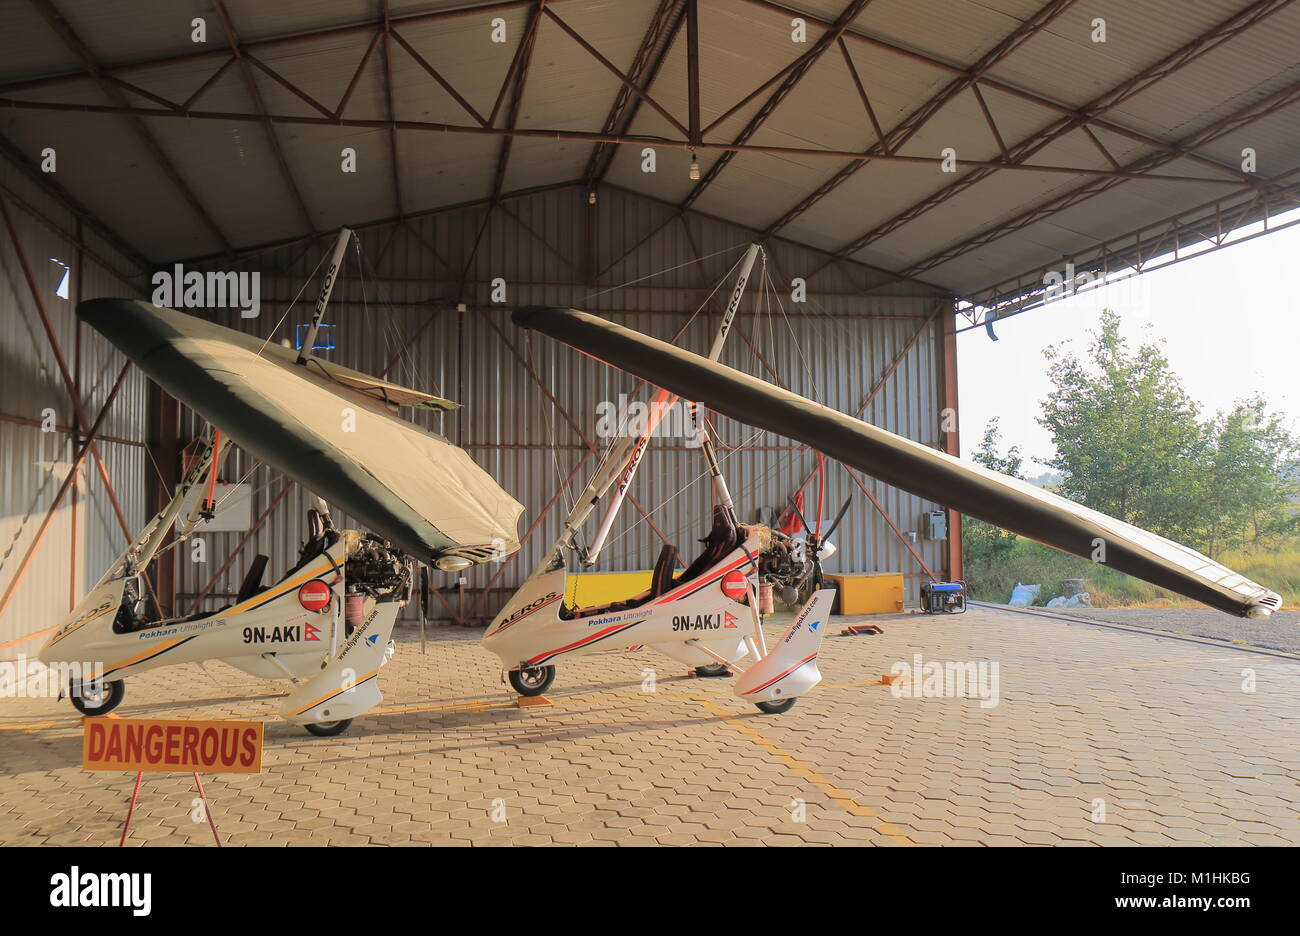 Scenic flight airplanes parked at Pokhara airport in Pokhara Nepal. - Stock Image